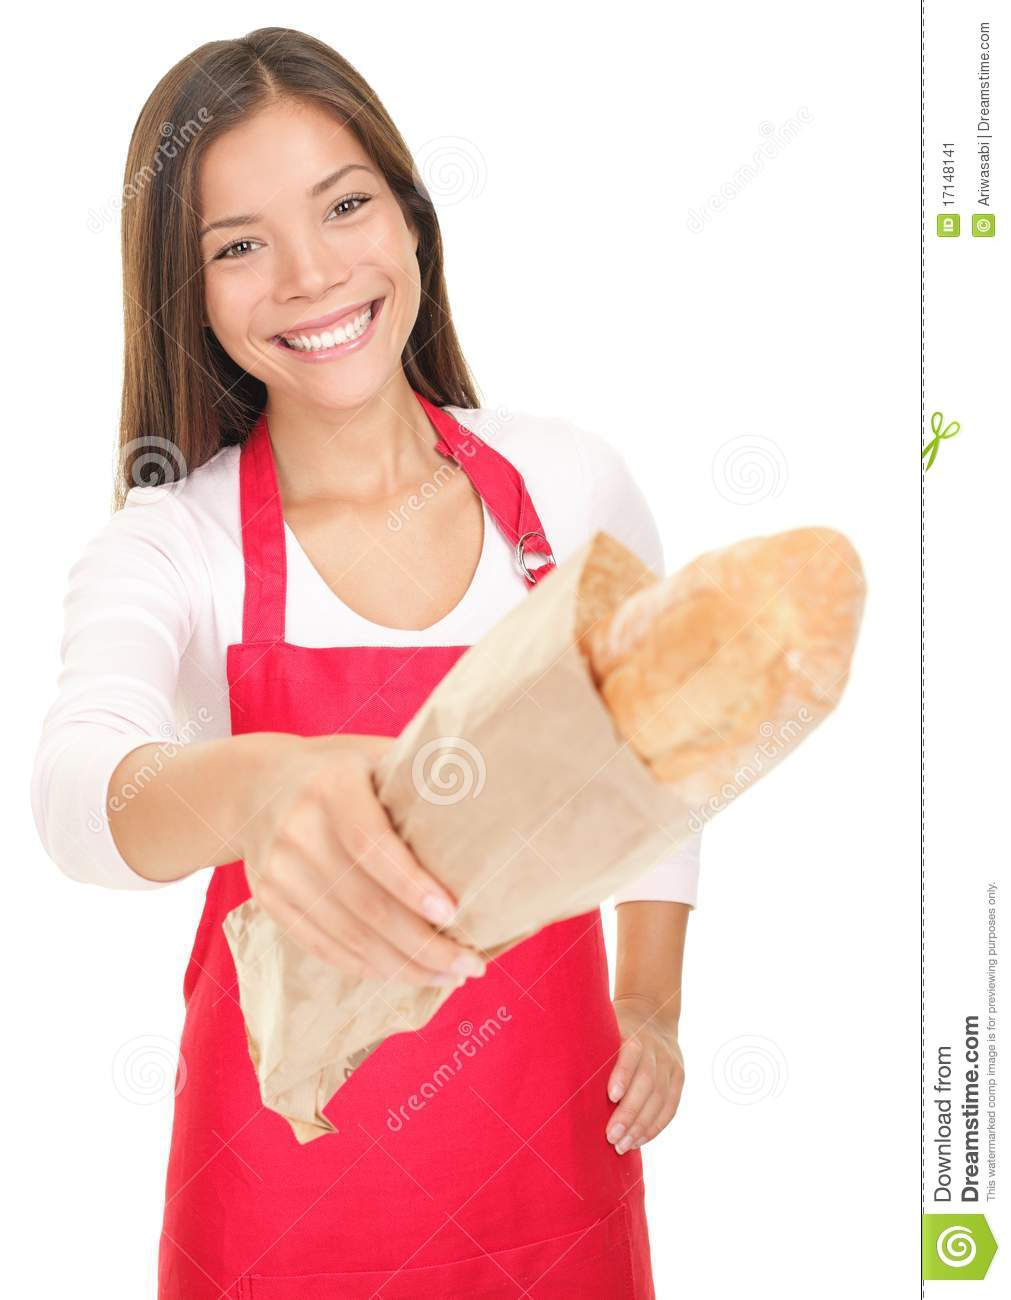 Woman Sales Clerk Giving Bread Stock Image - Image: 17148141